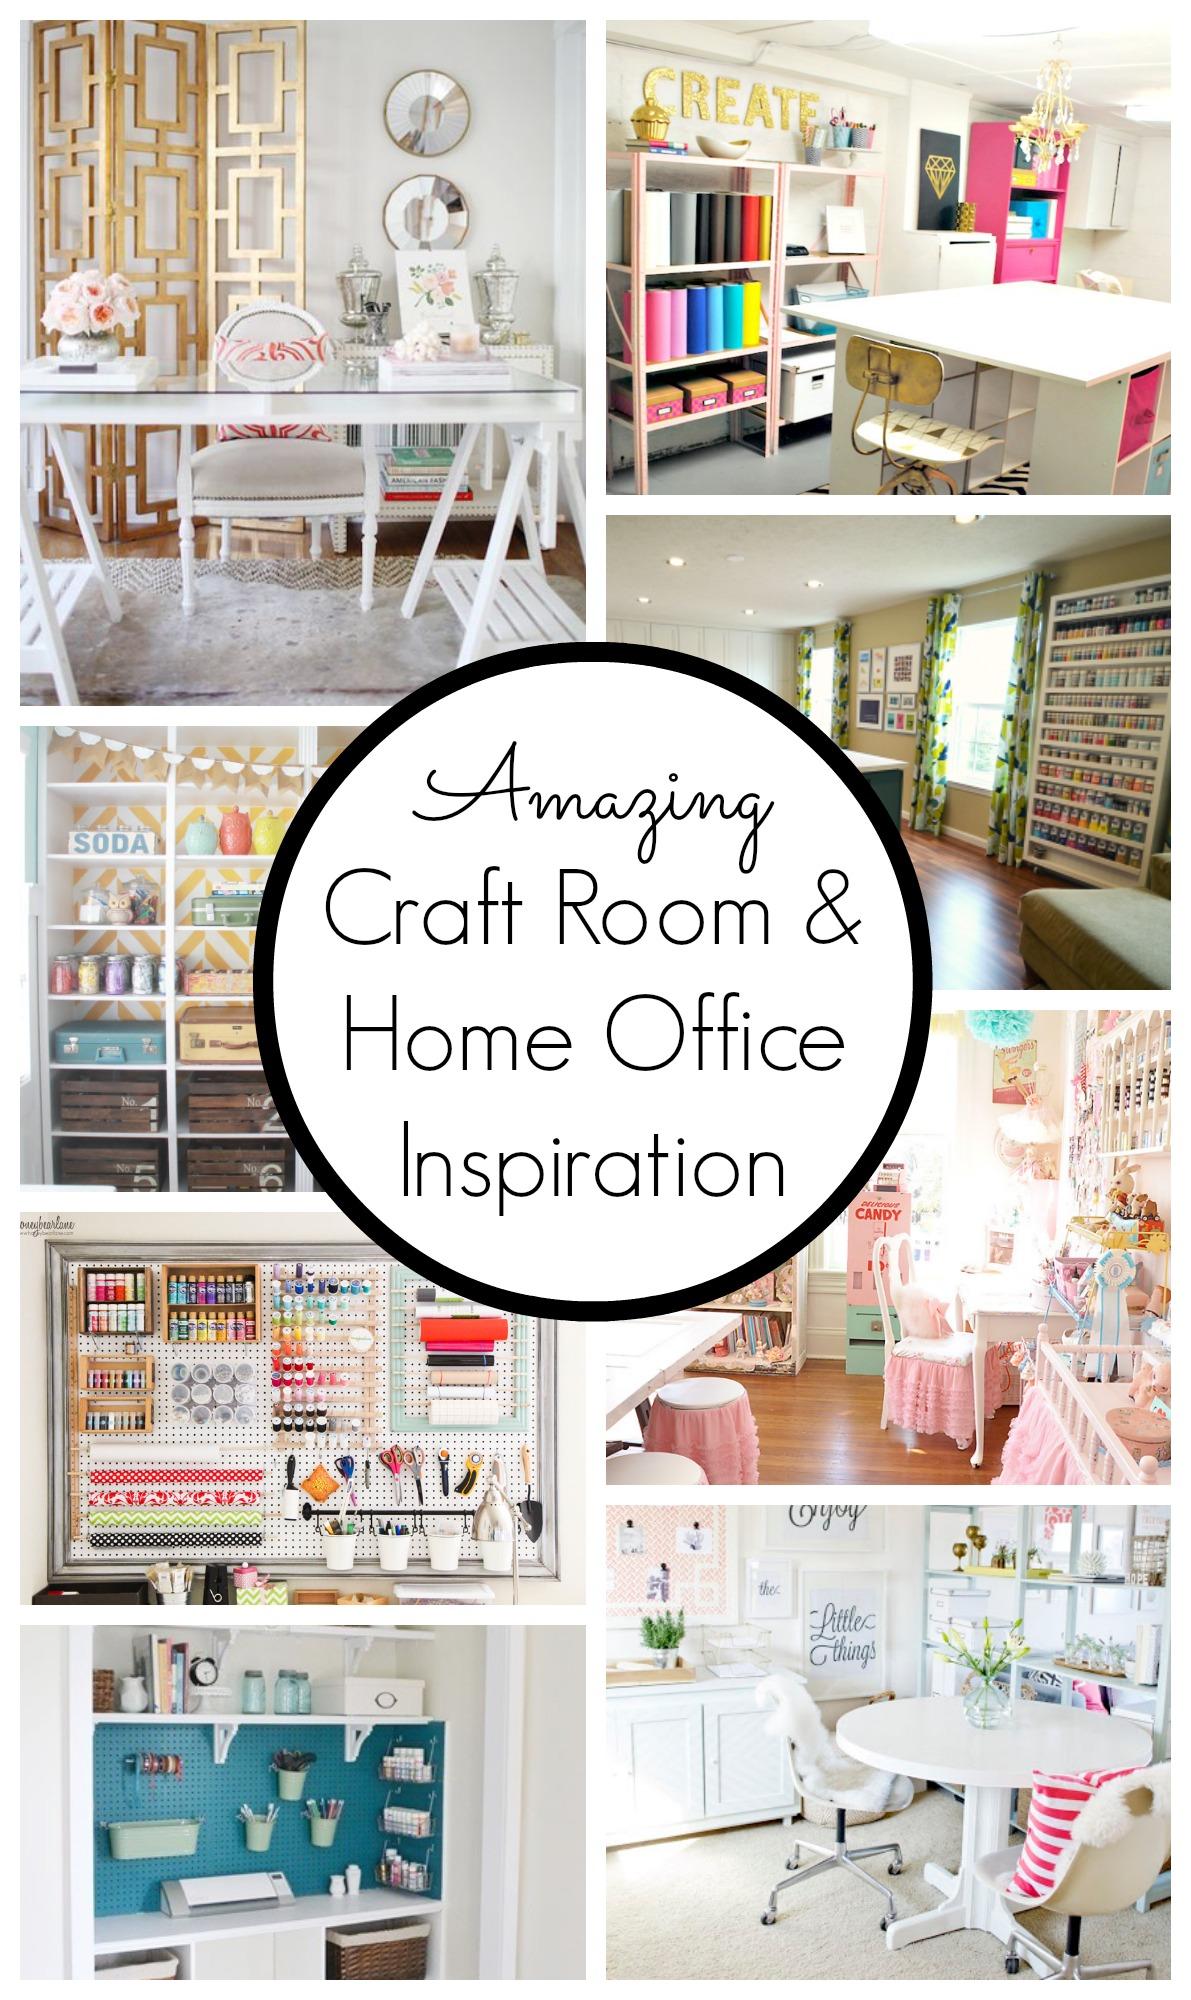 10 creative craft rooms and home offices classy clutter for Office inspiration